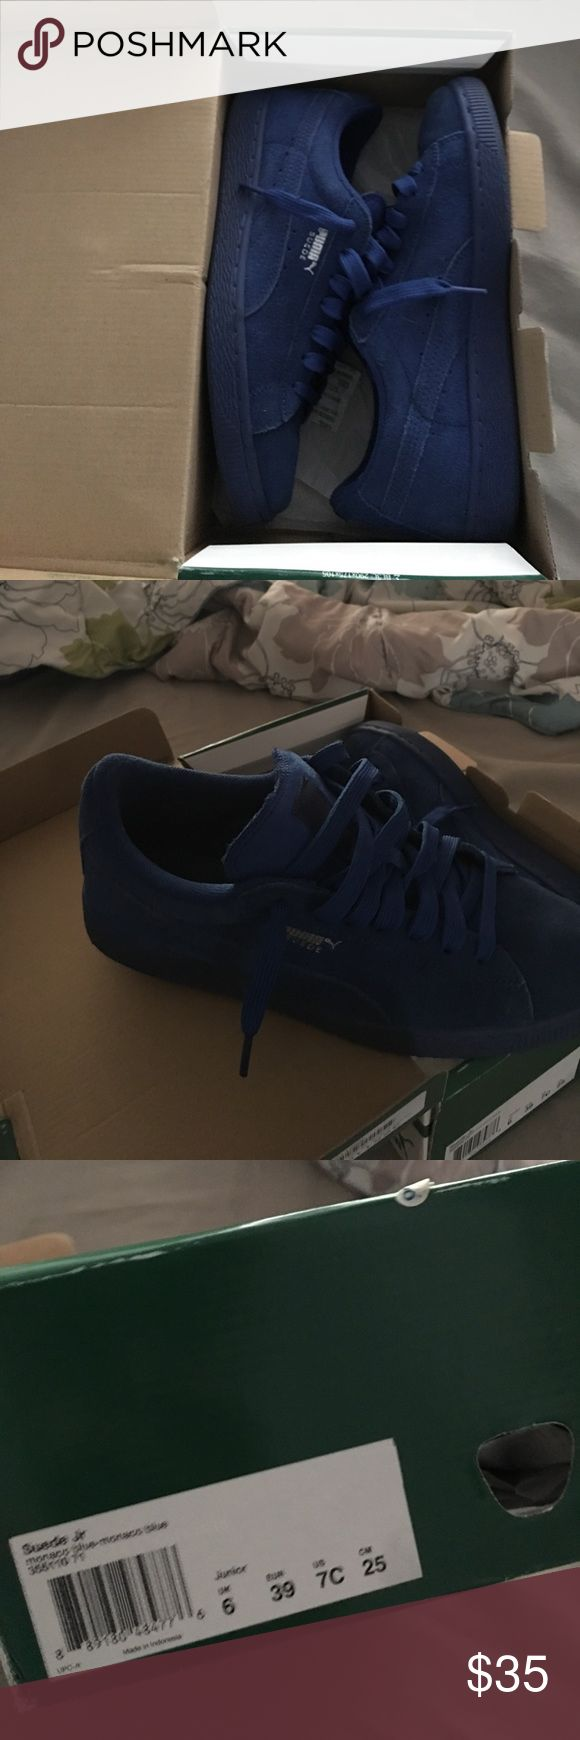 Blue Pumas Suede SIZE IS 7 IN GRADE SCHOOL SO PLEASE LOOK UP CONVERSION TO YOUR SIZE BEFORE MESSAGING Puma Shoes Athletic Shoes